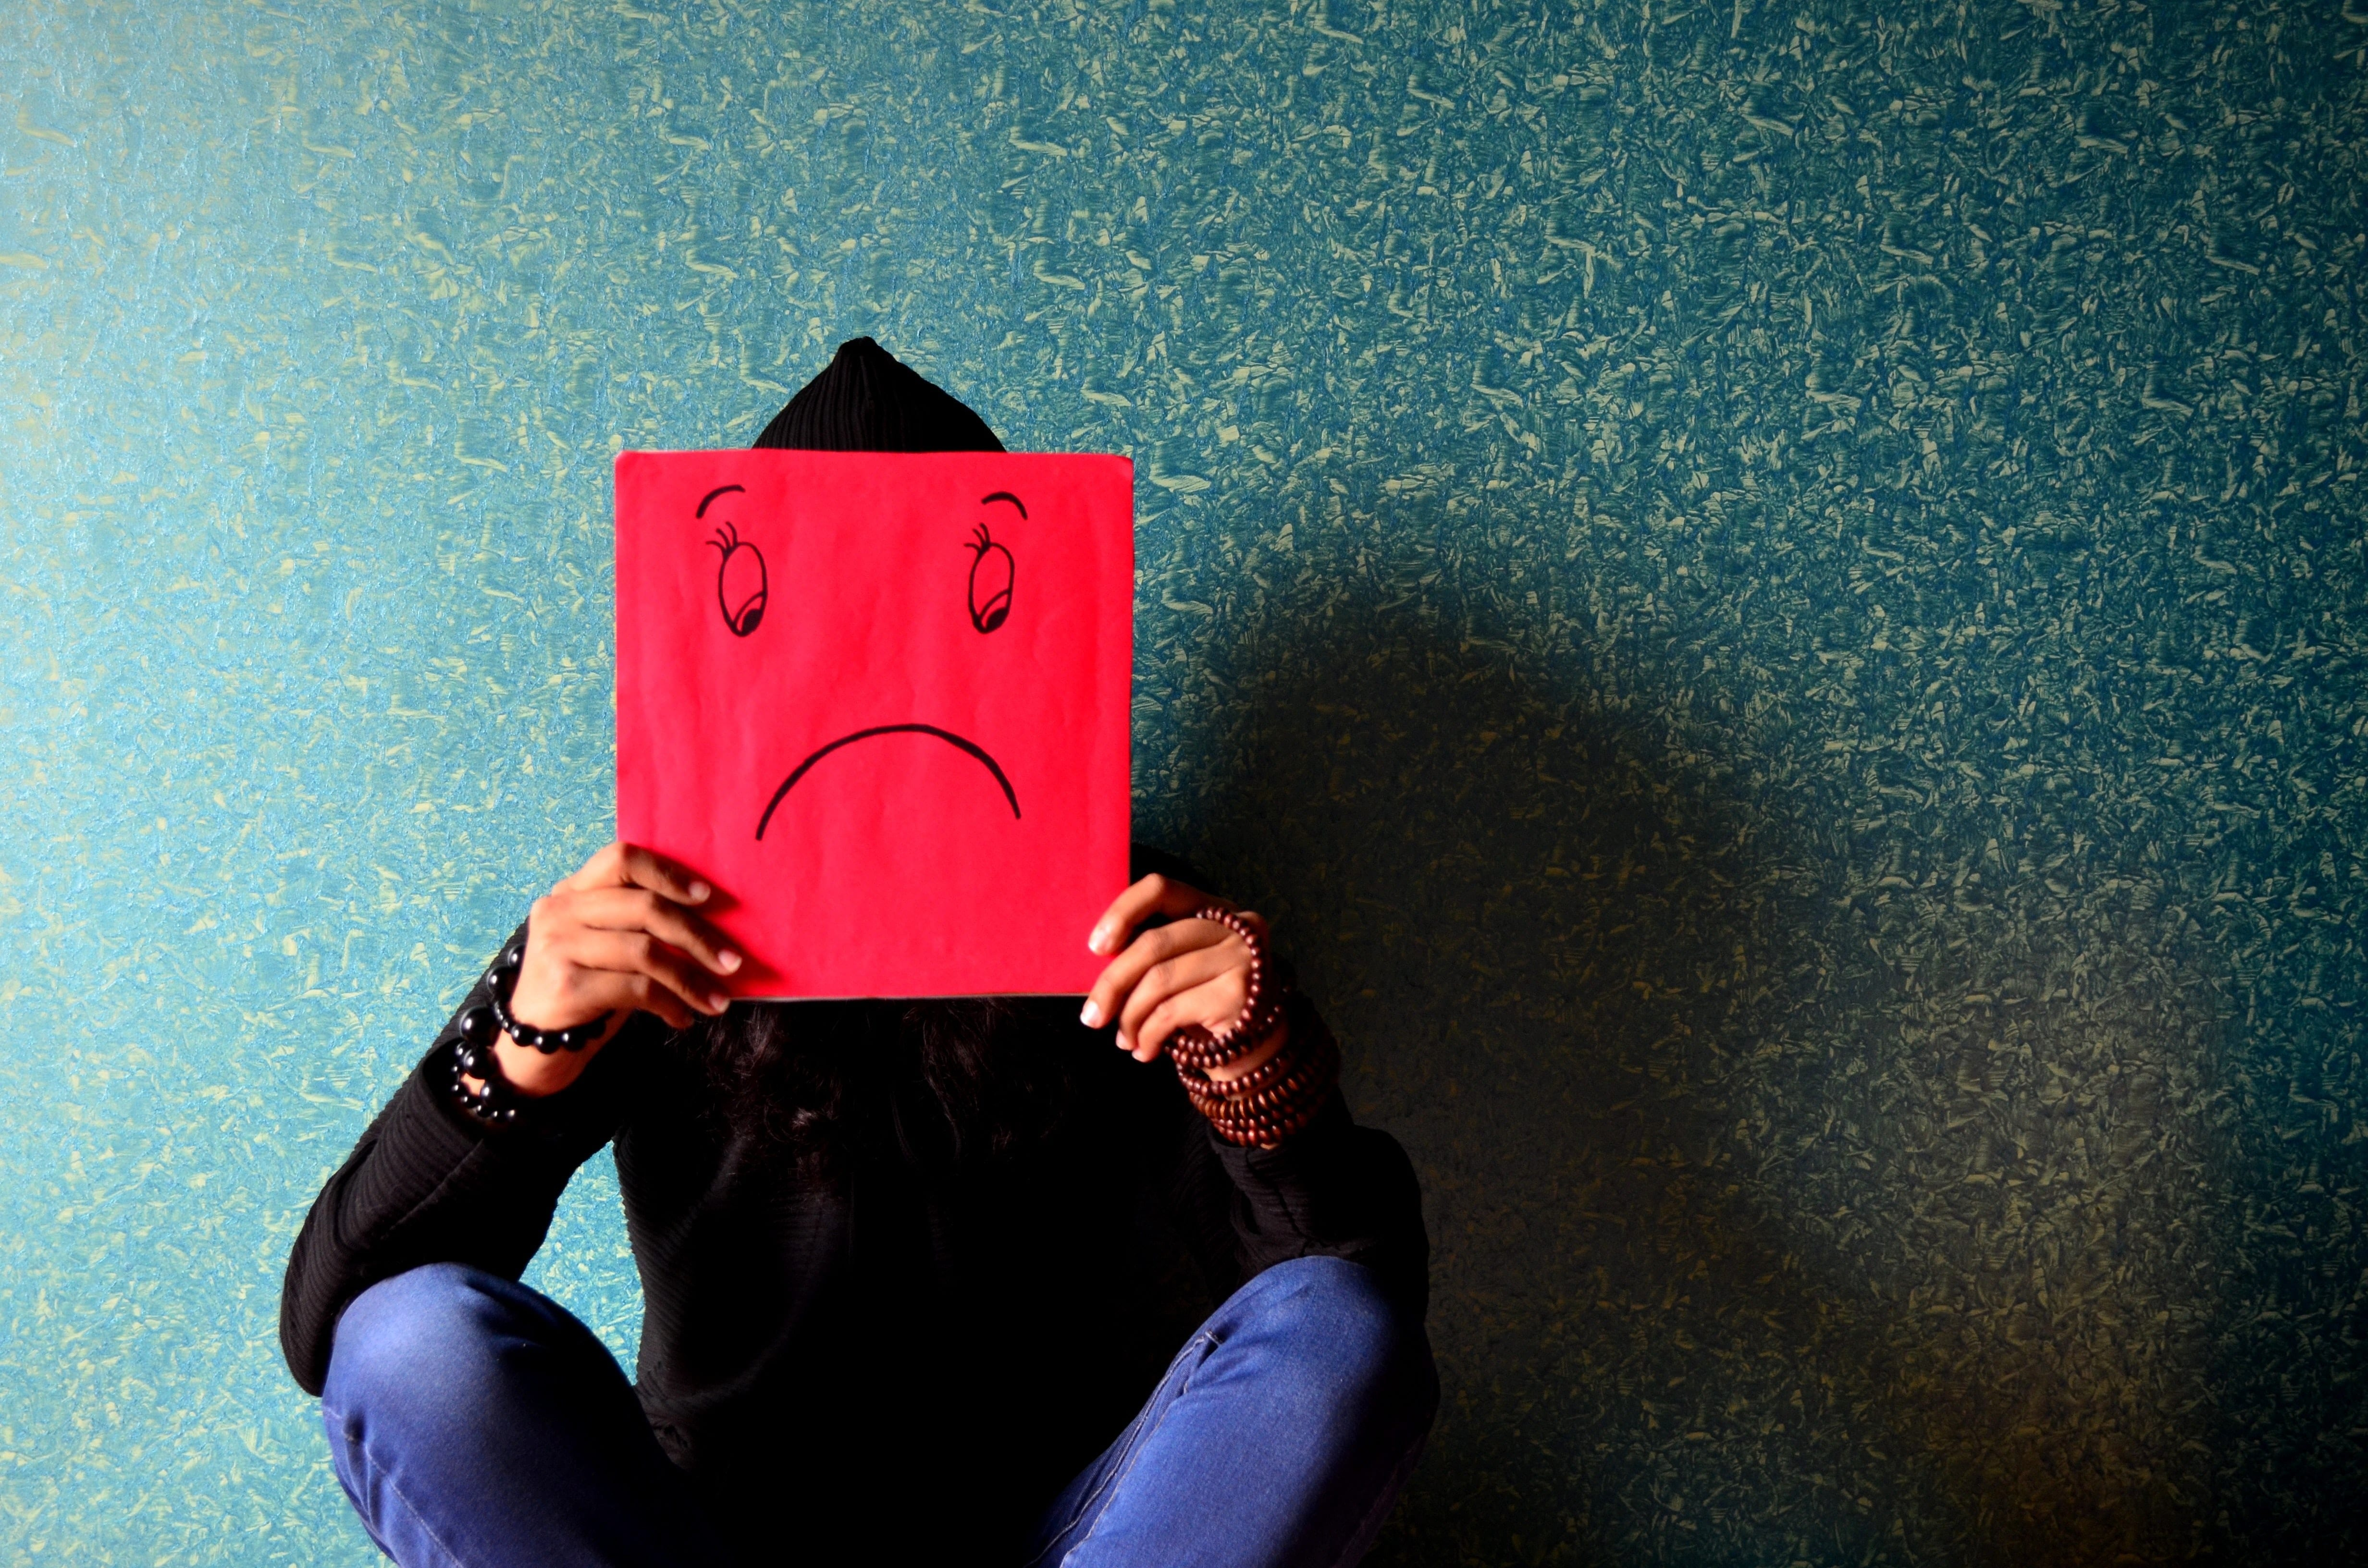 young adult sitting down in front of textured wall holding a red paper in front of face with a frown drawn on it